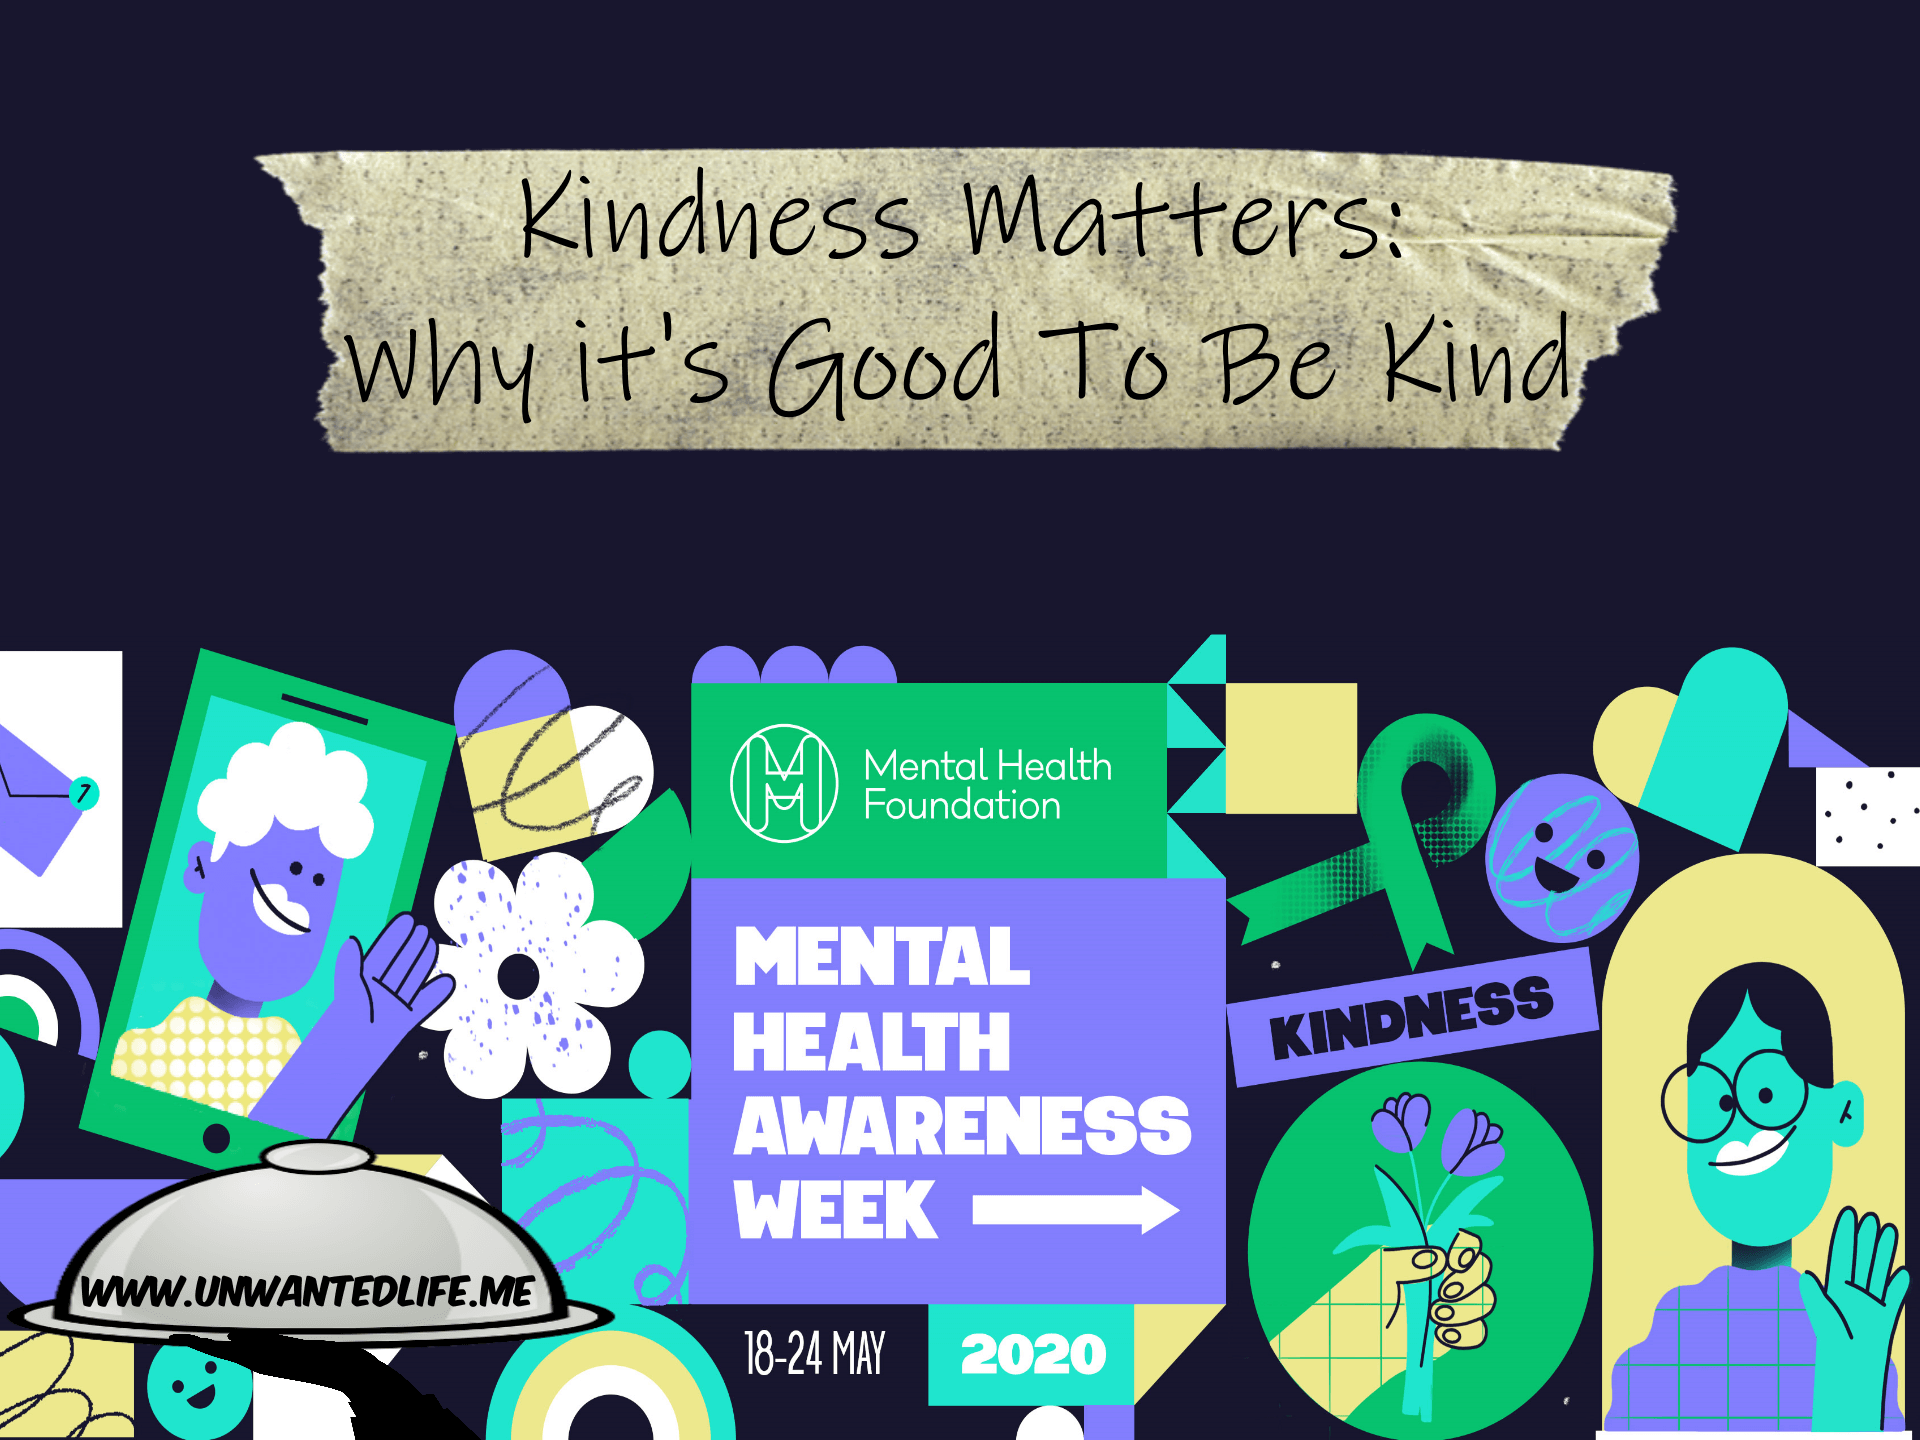 Kindness Matters Why It's Good To Be Kind | Mental Health And Wellness | Unwanted Life